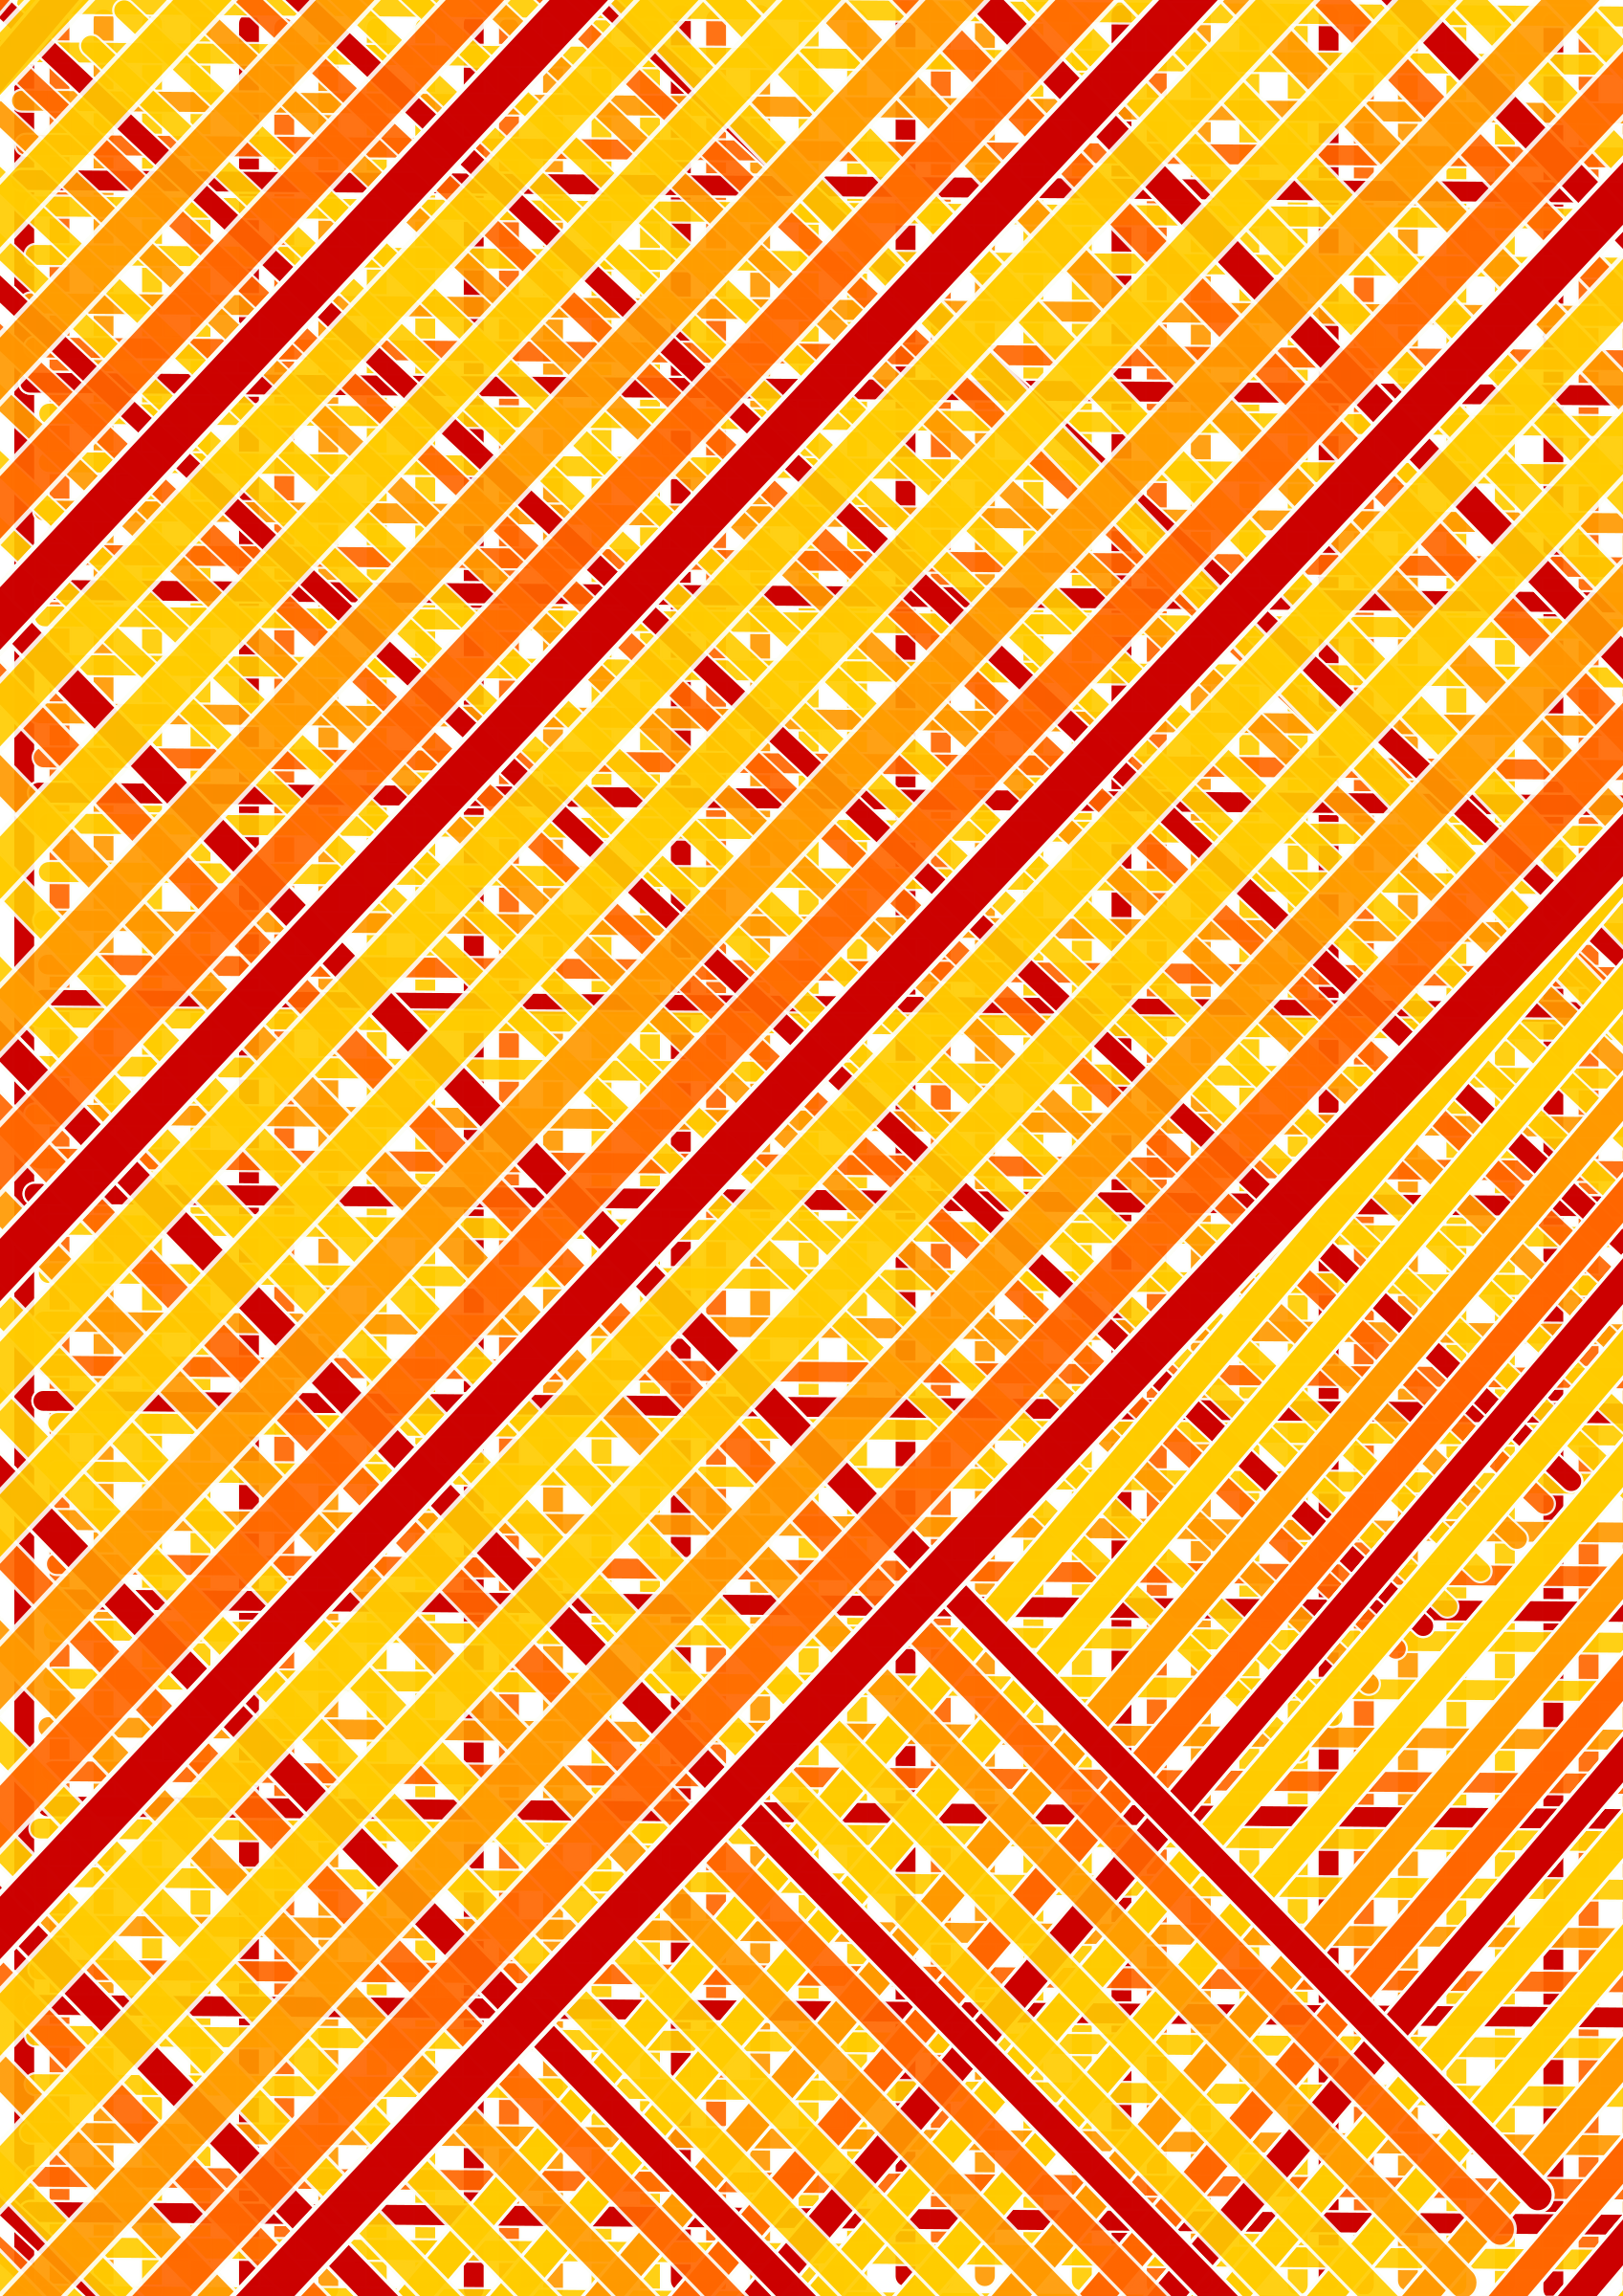 red orange lines complete across double diagonal by iglooo101